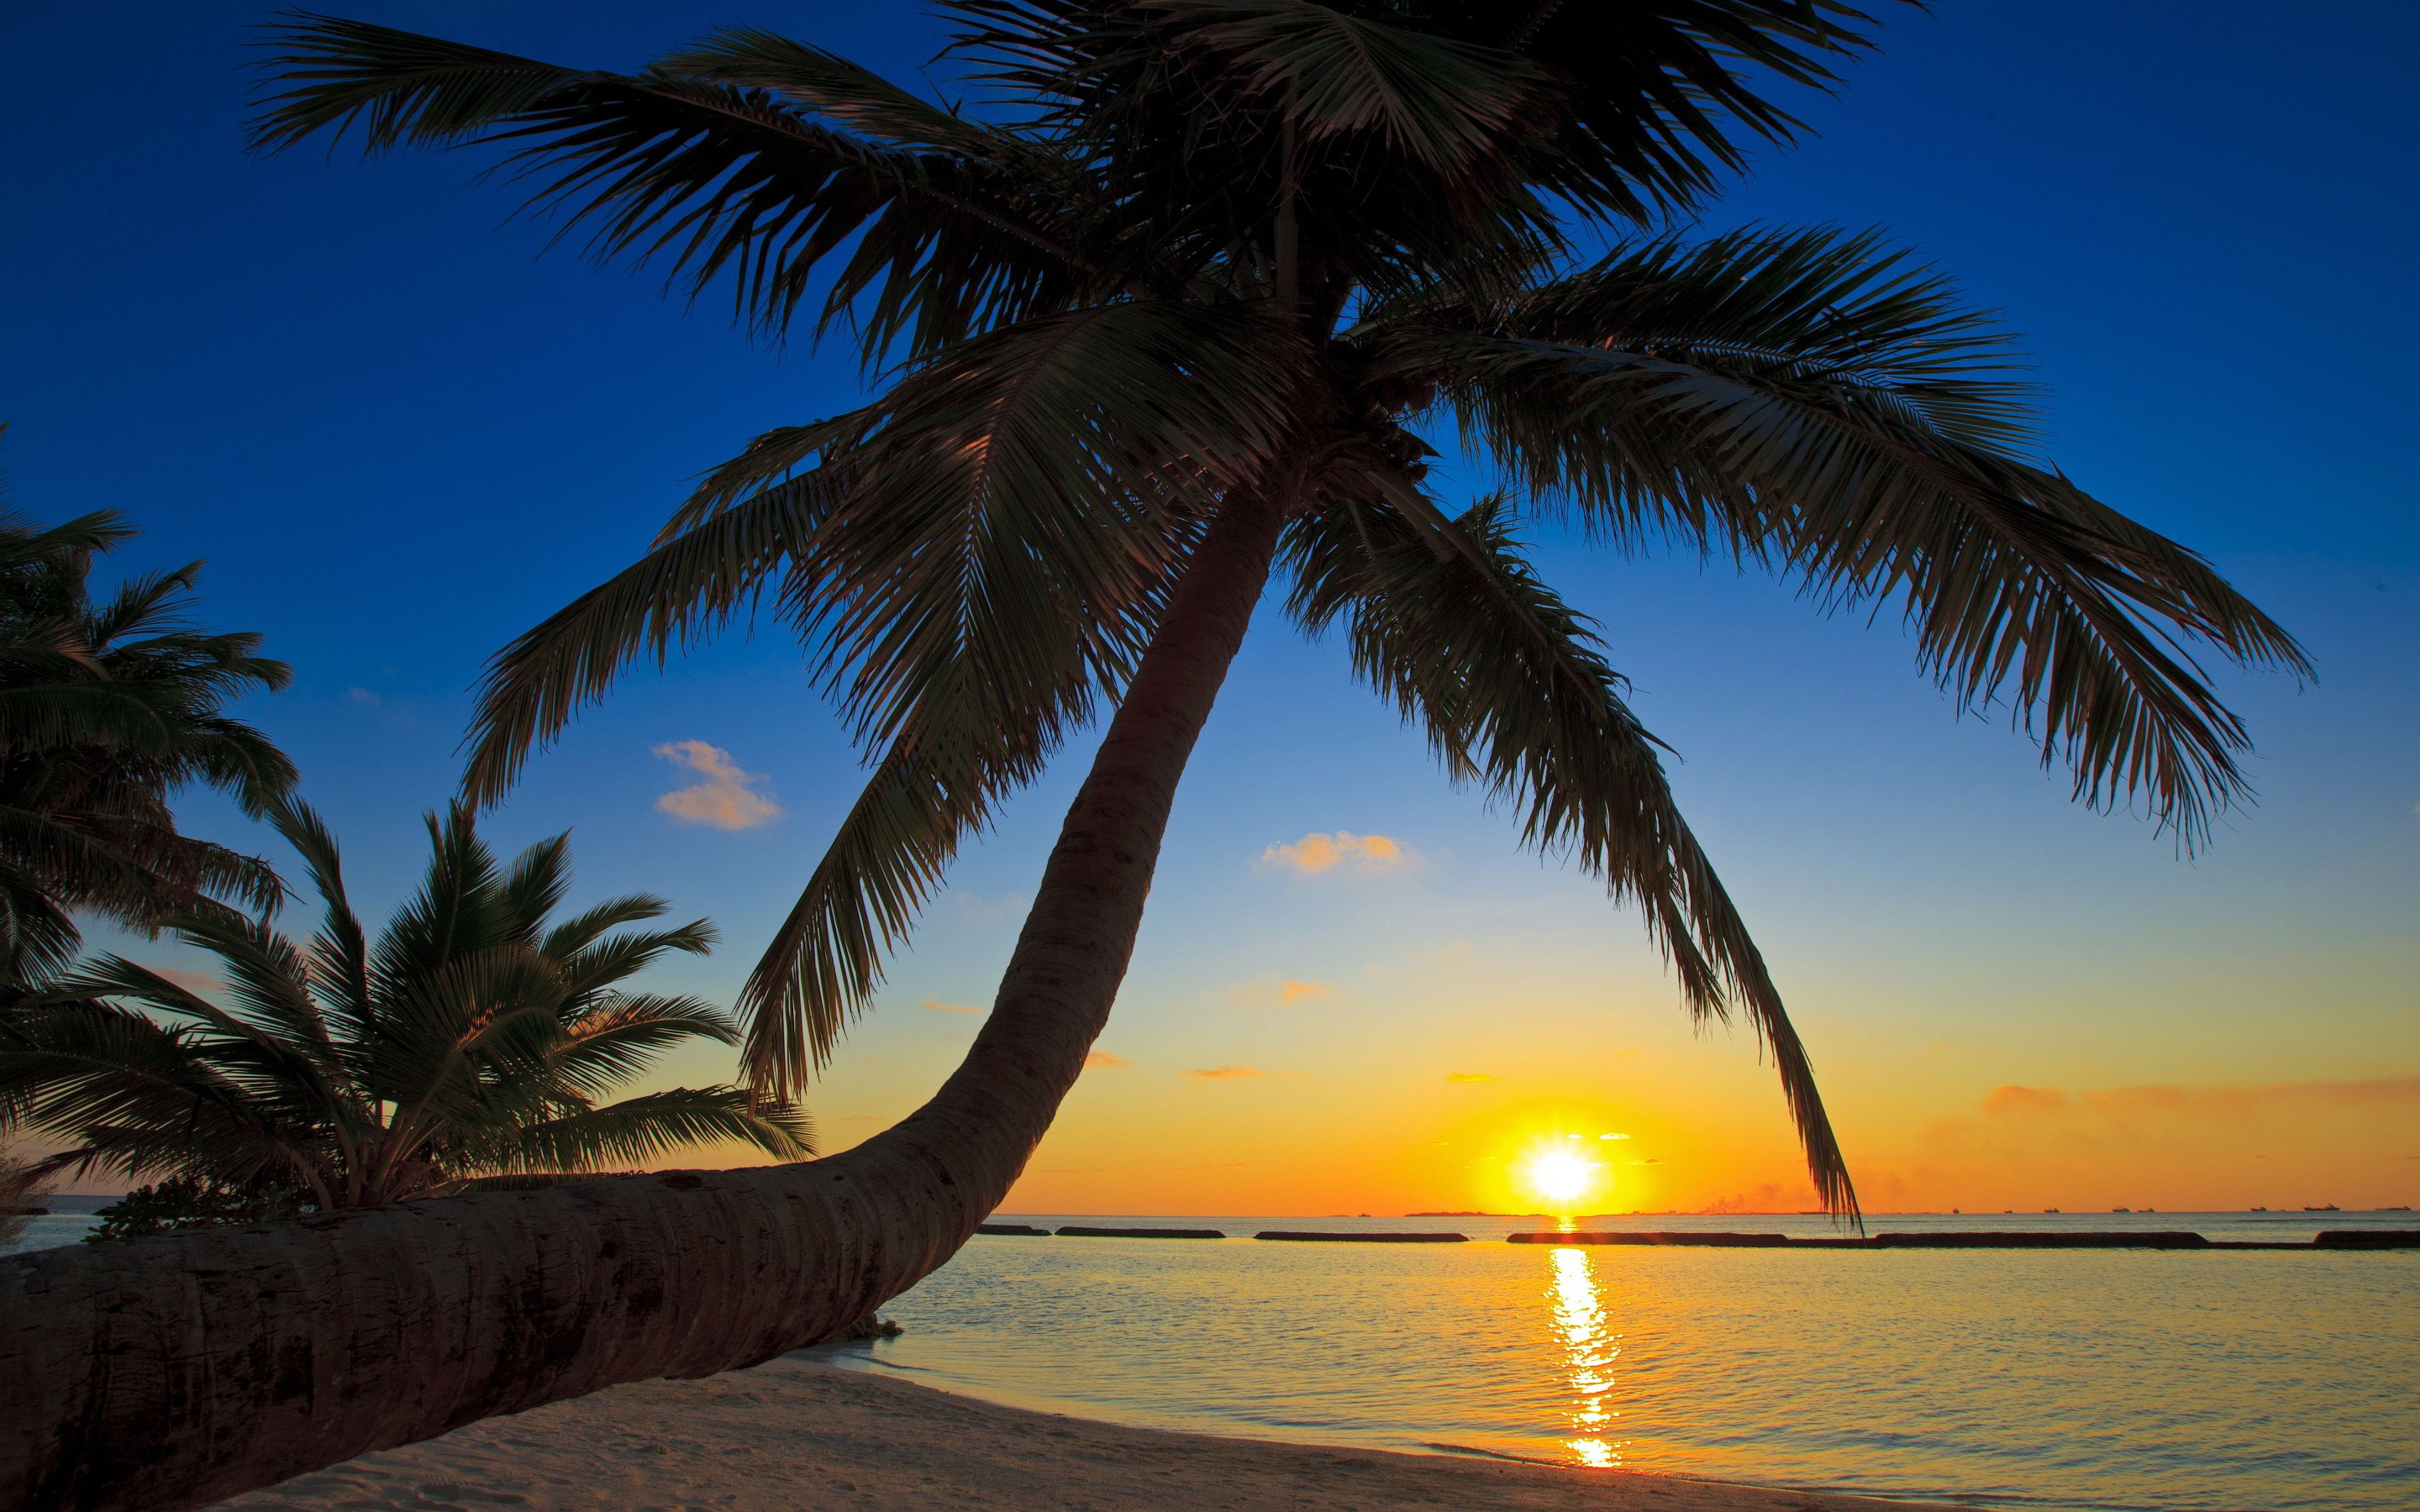 2880x1800 Sunset Beach Wallpaper 2880×1800 - High Definition Wallpaper | Daily  Screens id-7702